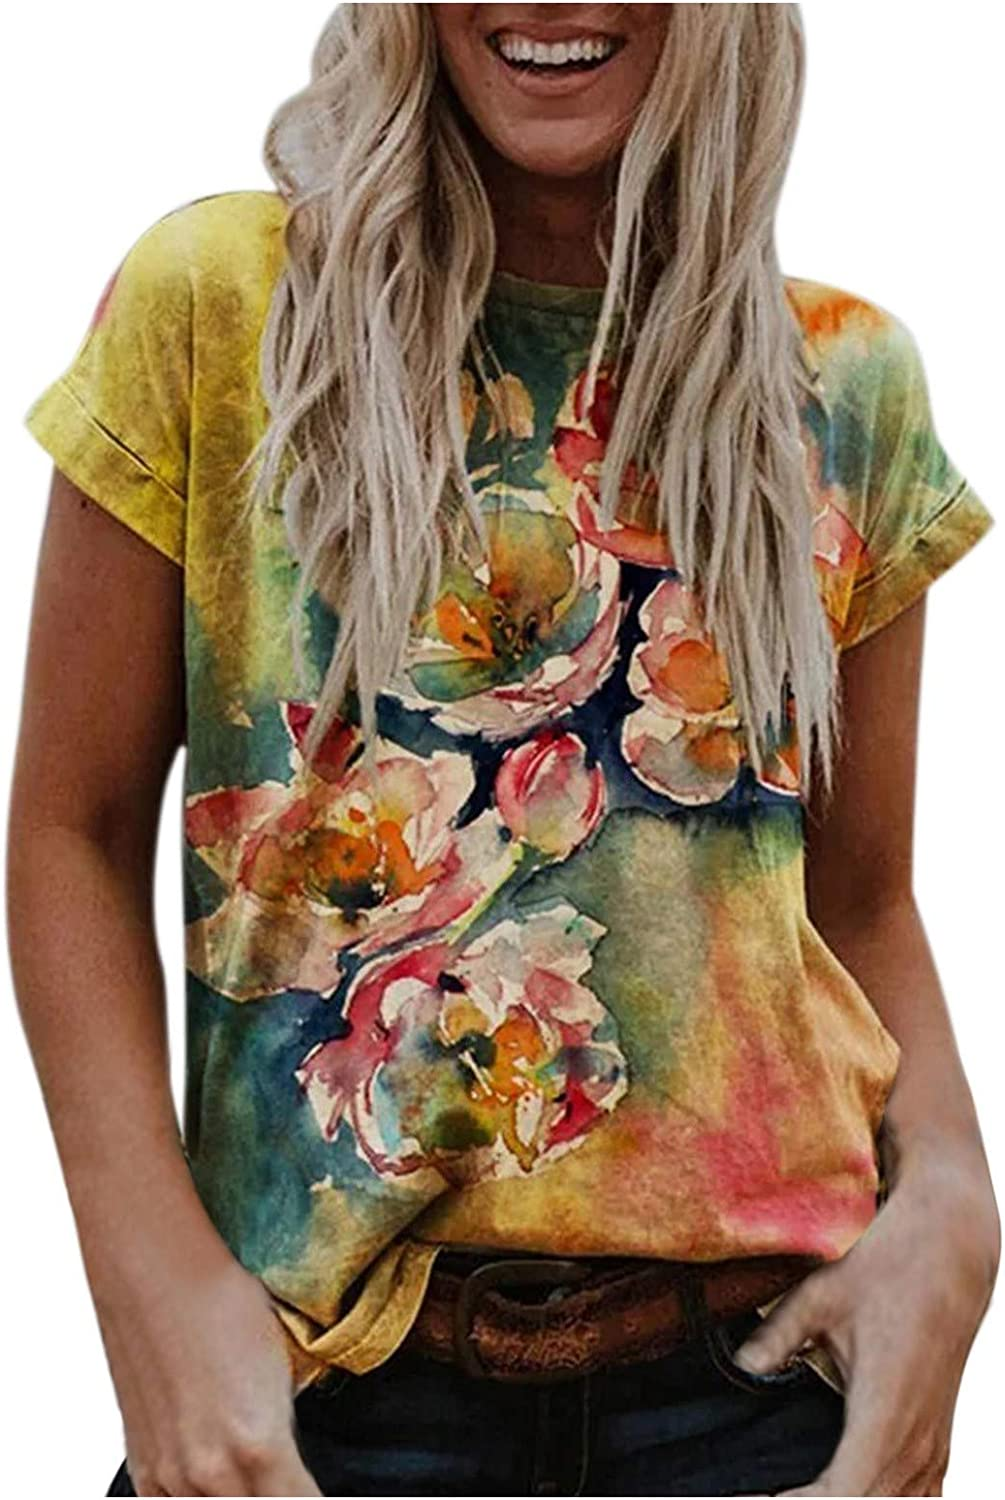 POTO Womens Short Sleeve Shirts Casual Tops for Women Vintage Graphic T-Shirt Fashion O-Neck Tees Summer Tunic Blouses